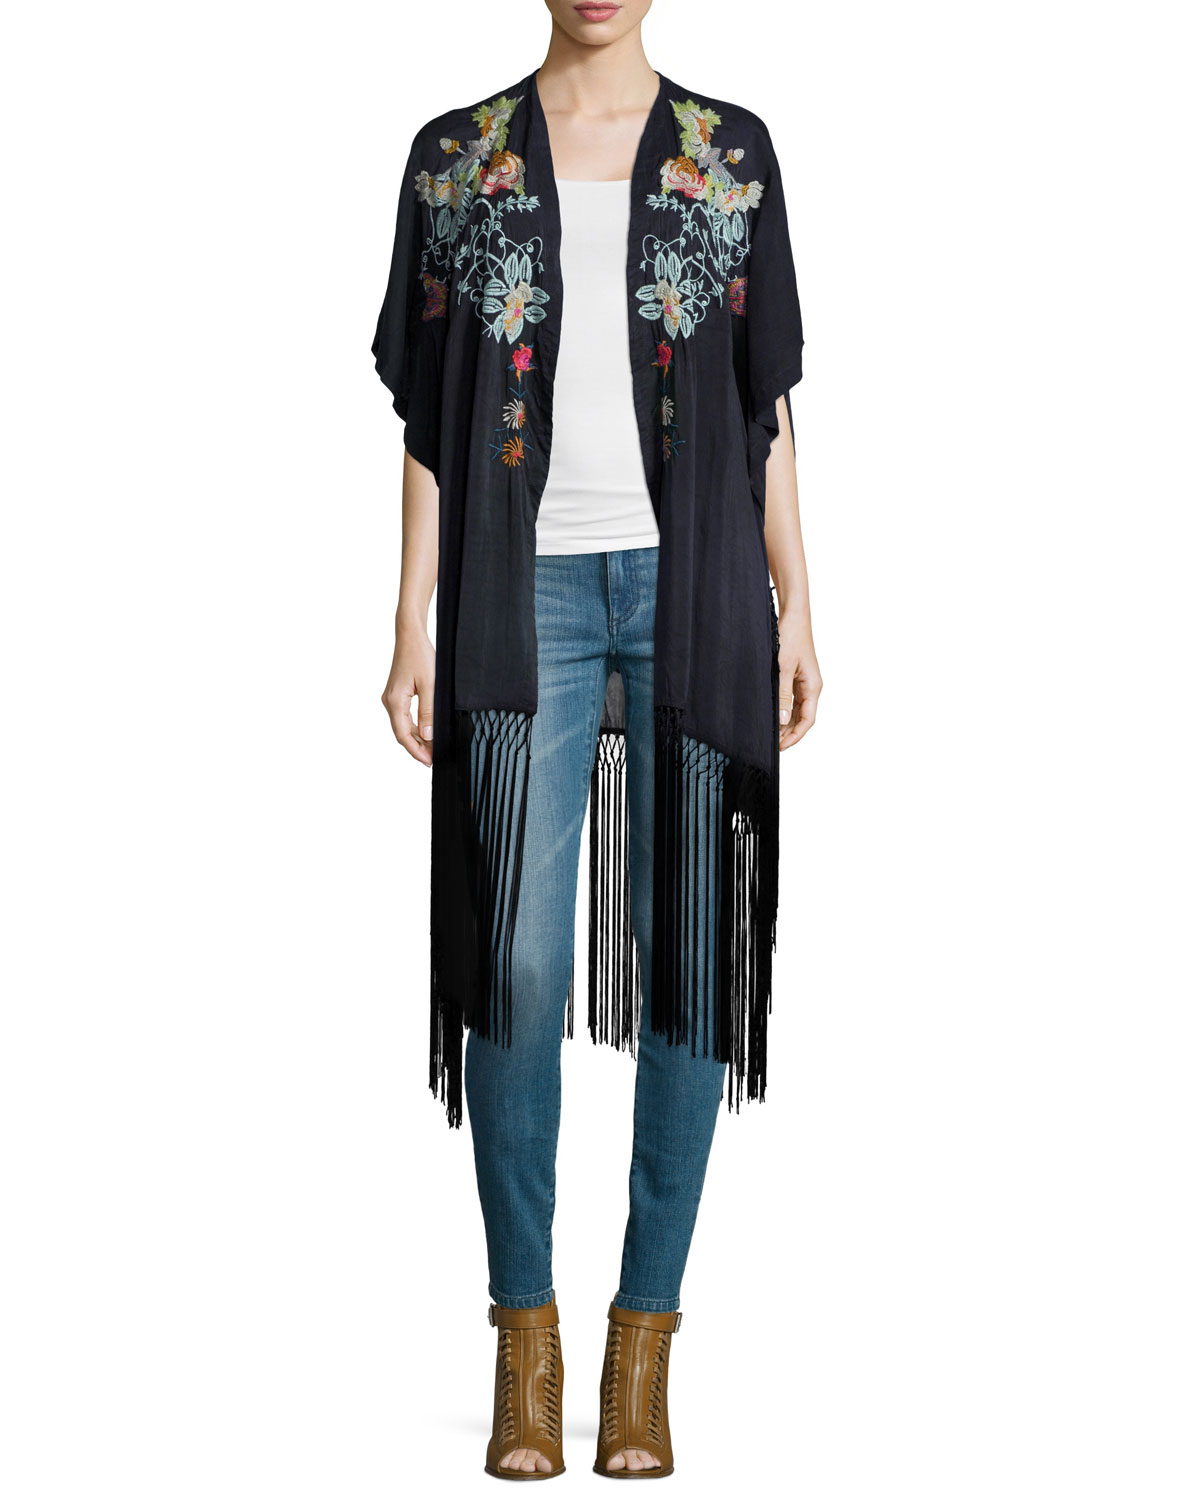 Argent Embroidered Kimono with Fringe Hem